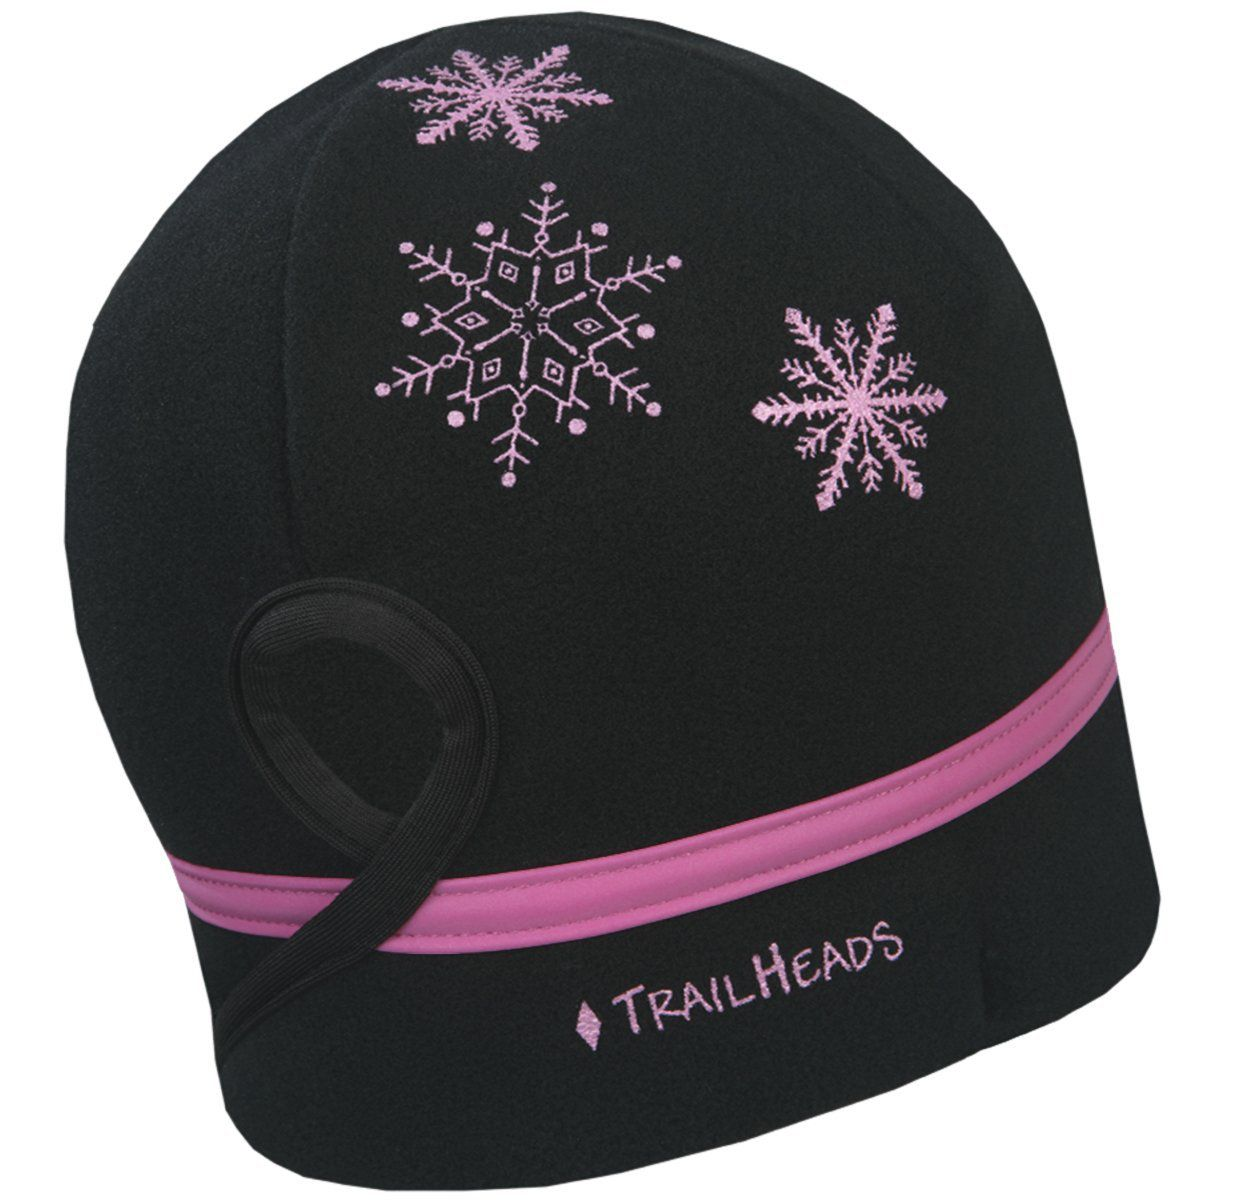 0ac6545a6d8 Trail Heads ponytail winter hat